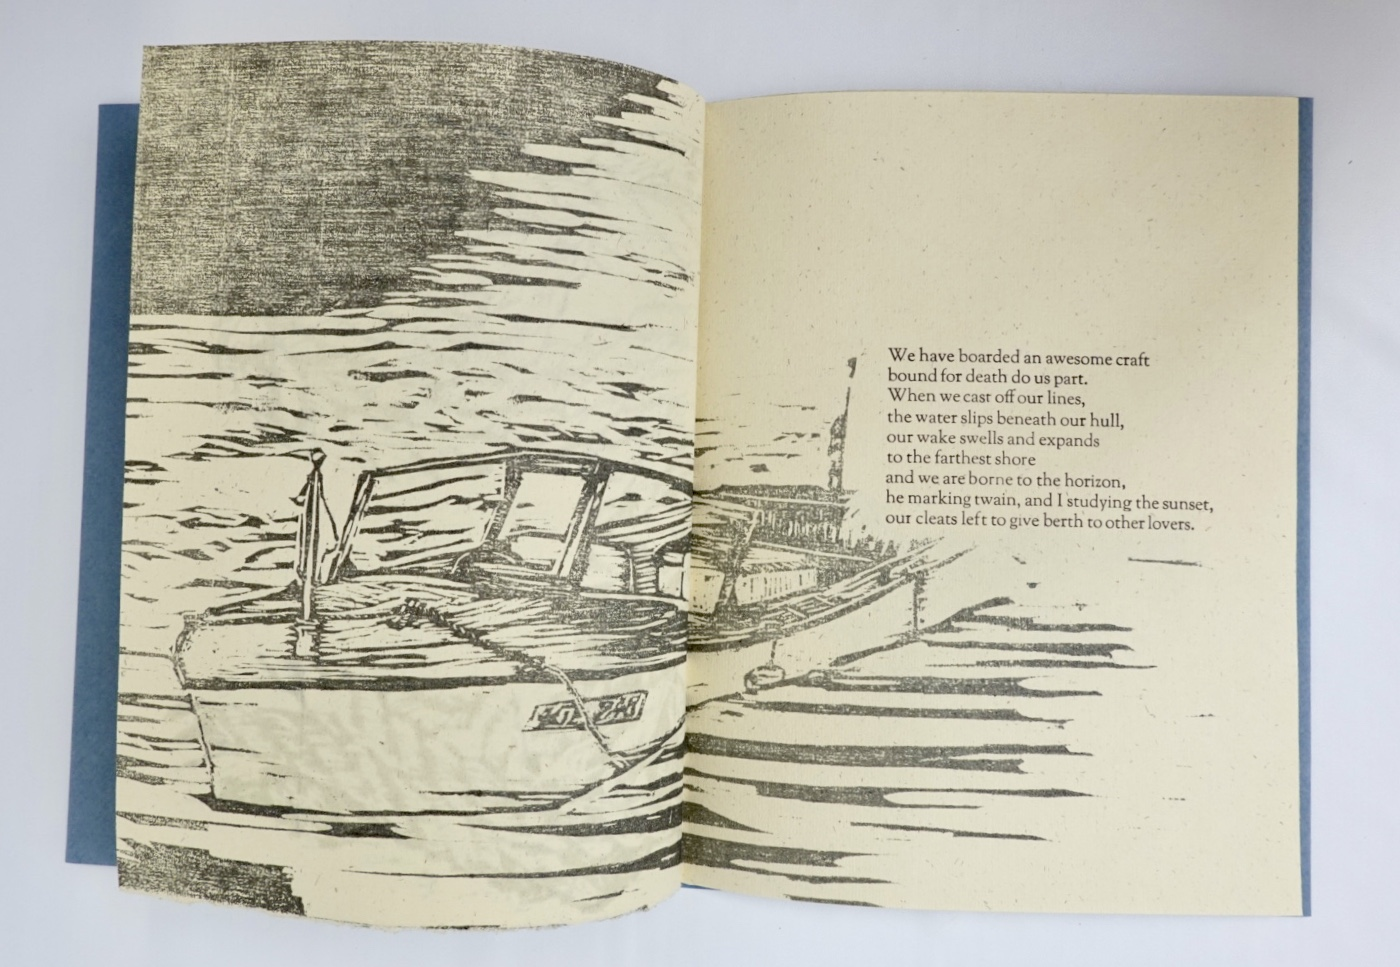 fifth and sixth pages of book with wood cut relief imagery and third and final stanza of poem